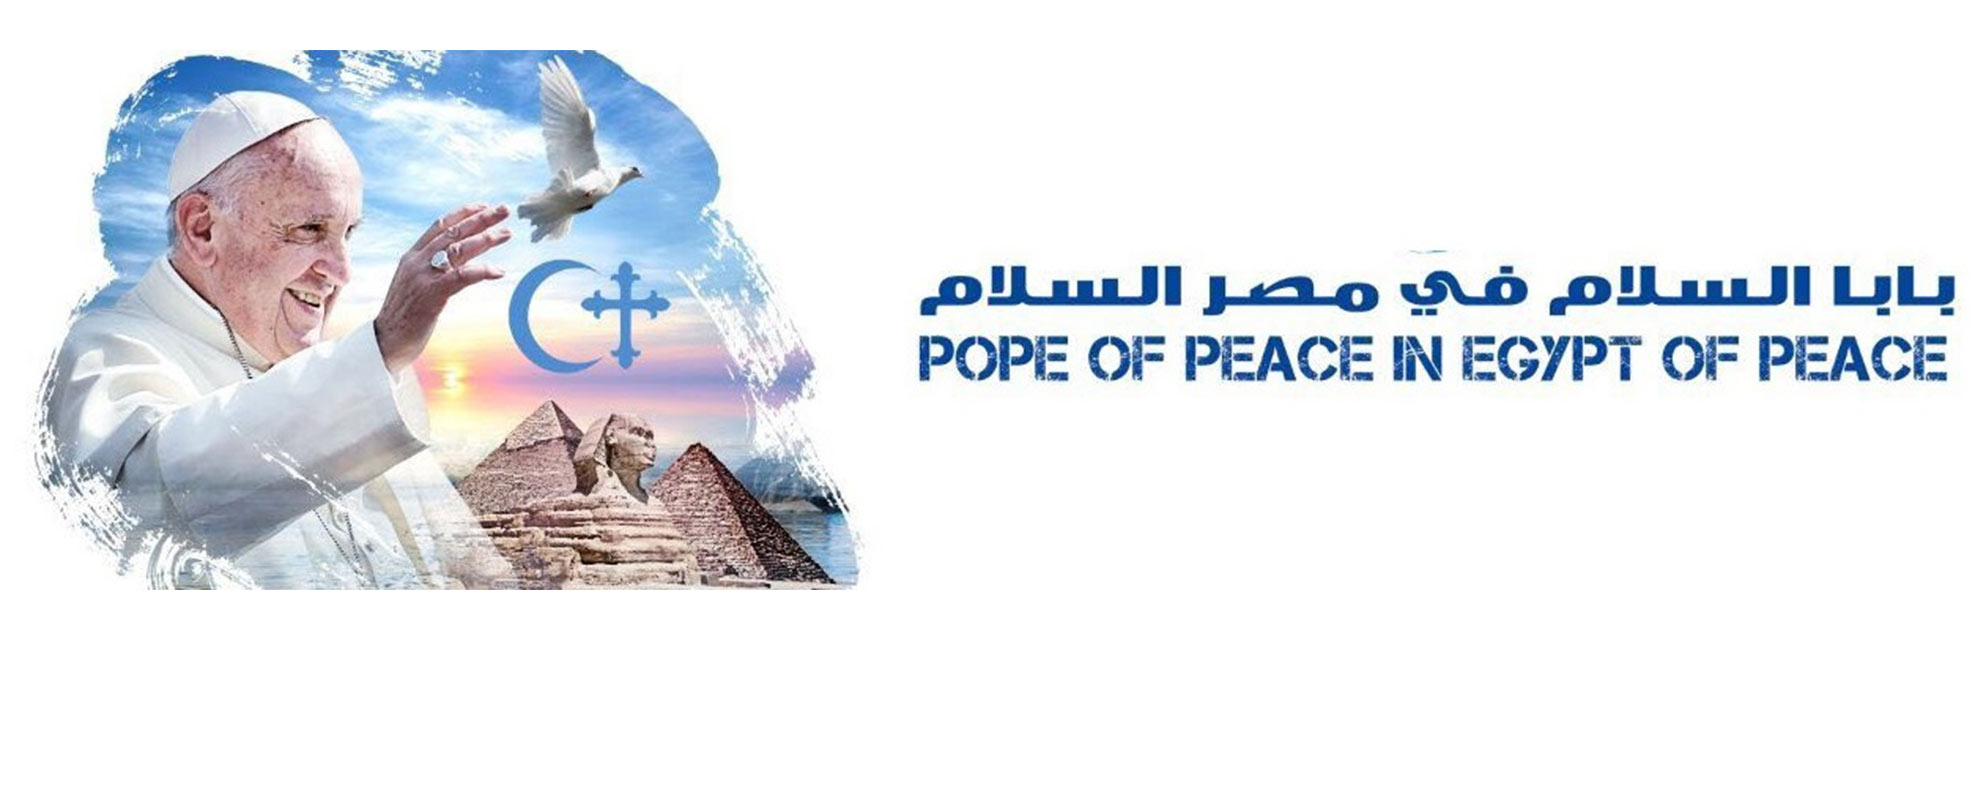 Aid to the Church in Need (ACN) will help 3000 young Egyptians to meet Pope Francis in Cairo